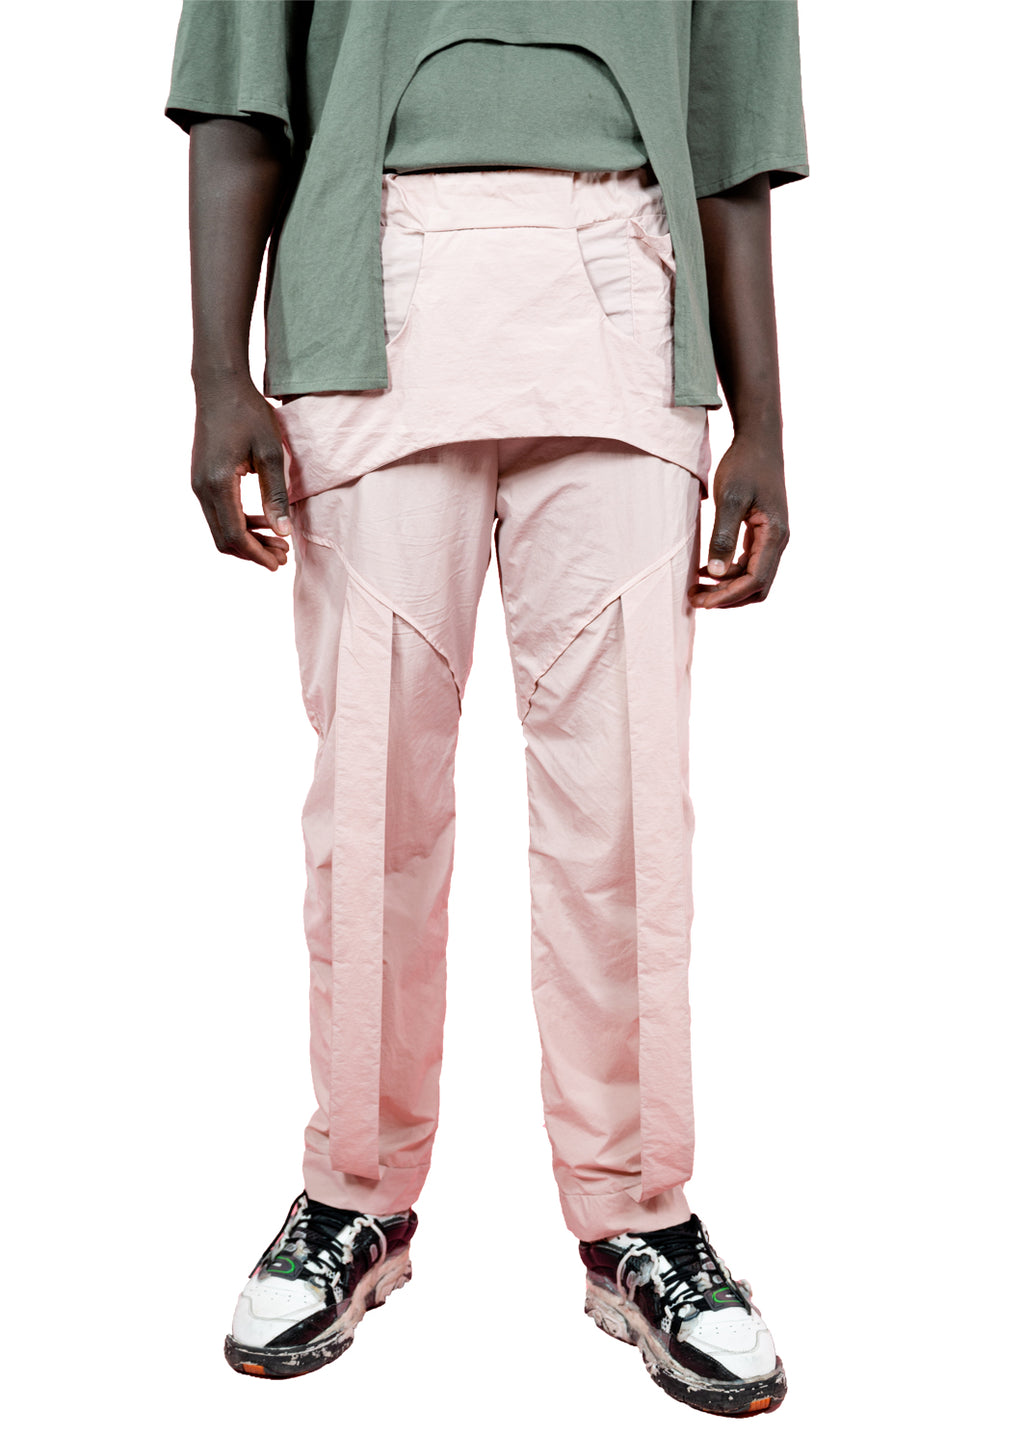 JOGGER PANTS PINK POWDER